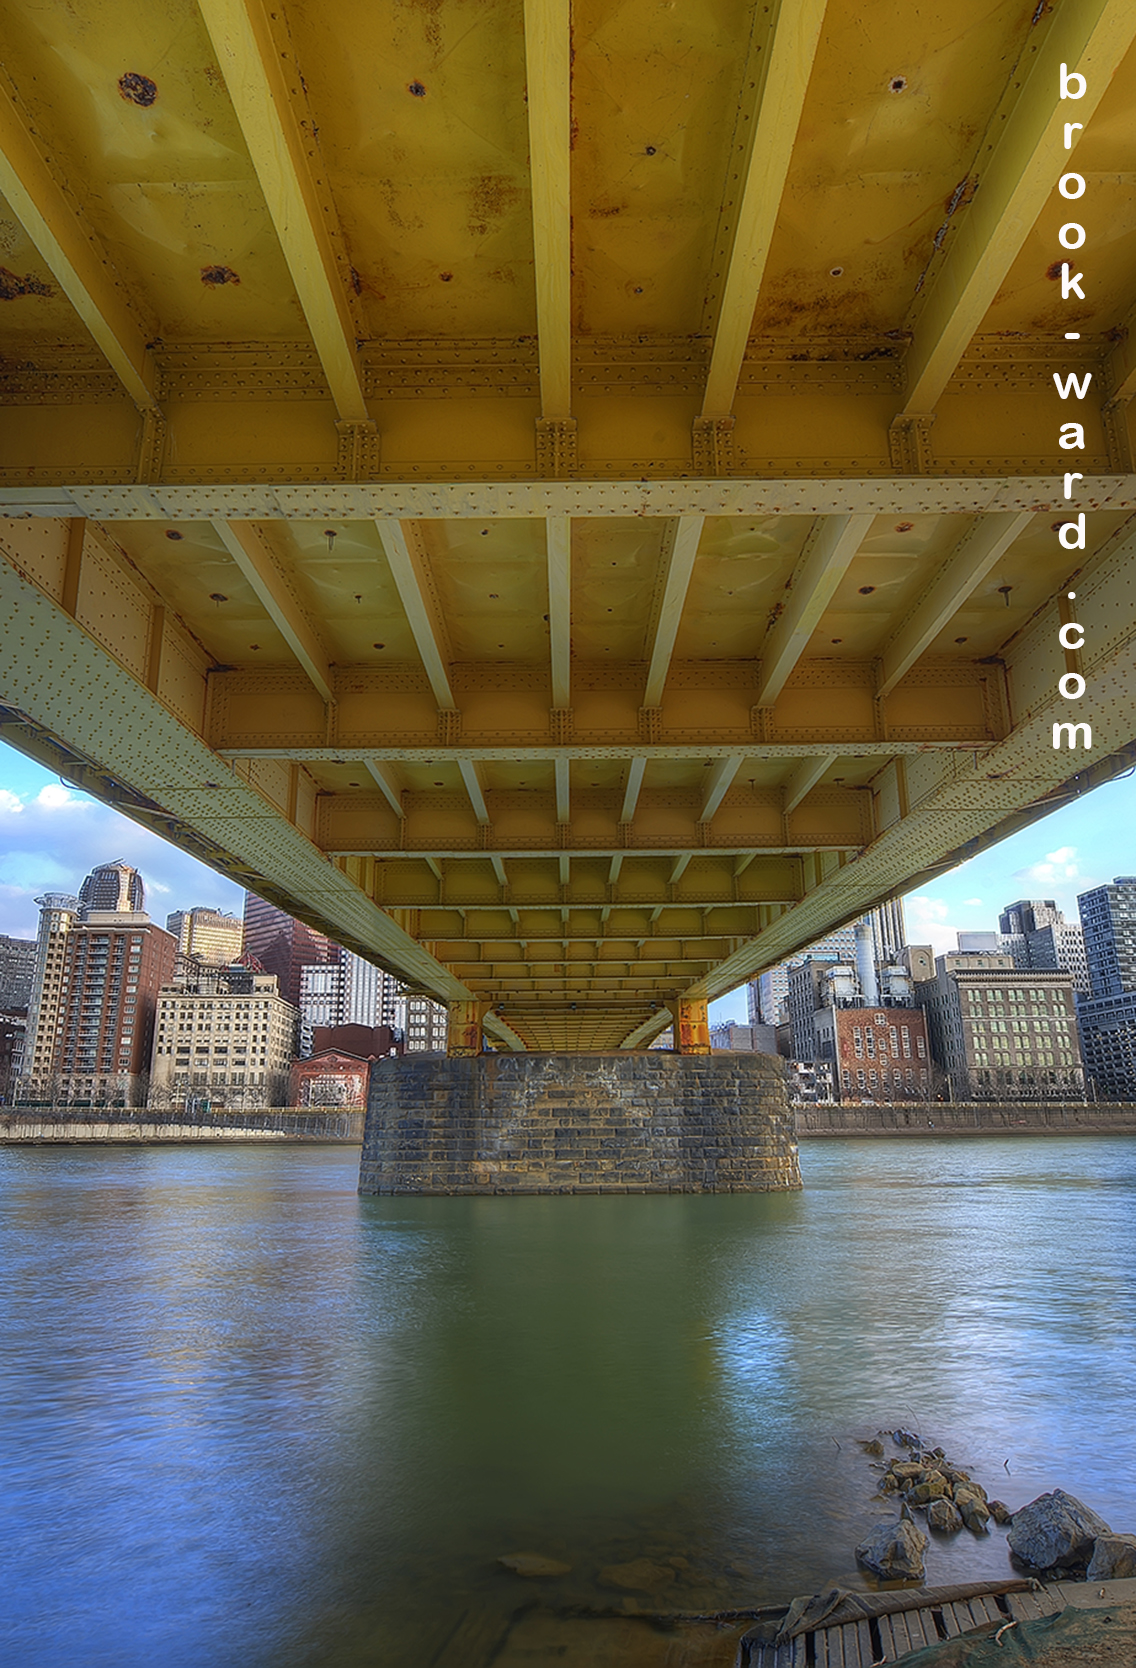 Under The Bridge - iPhone.jpg